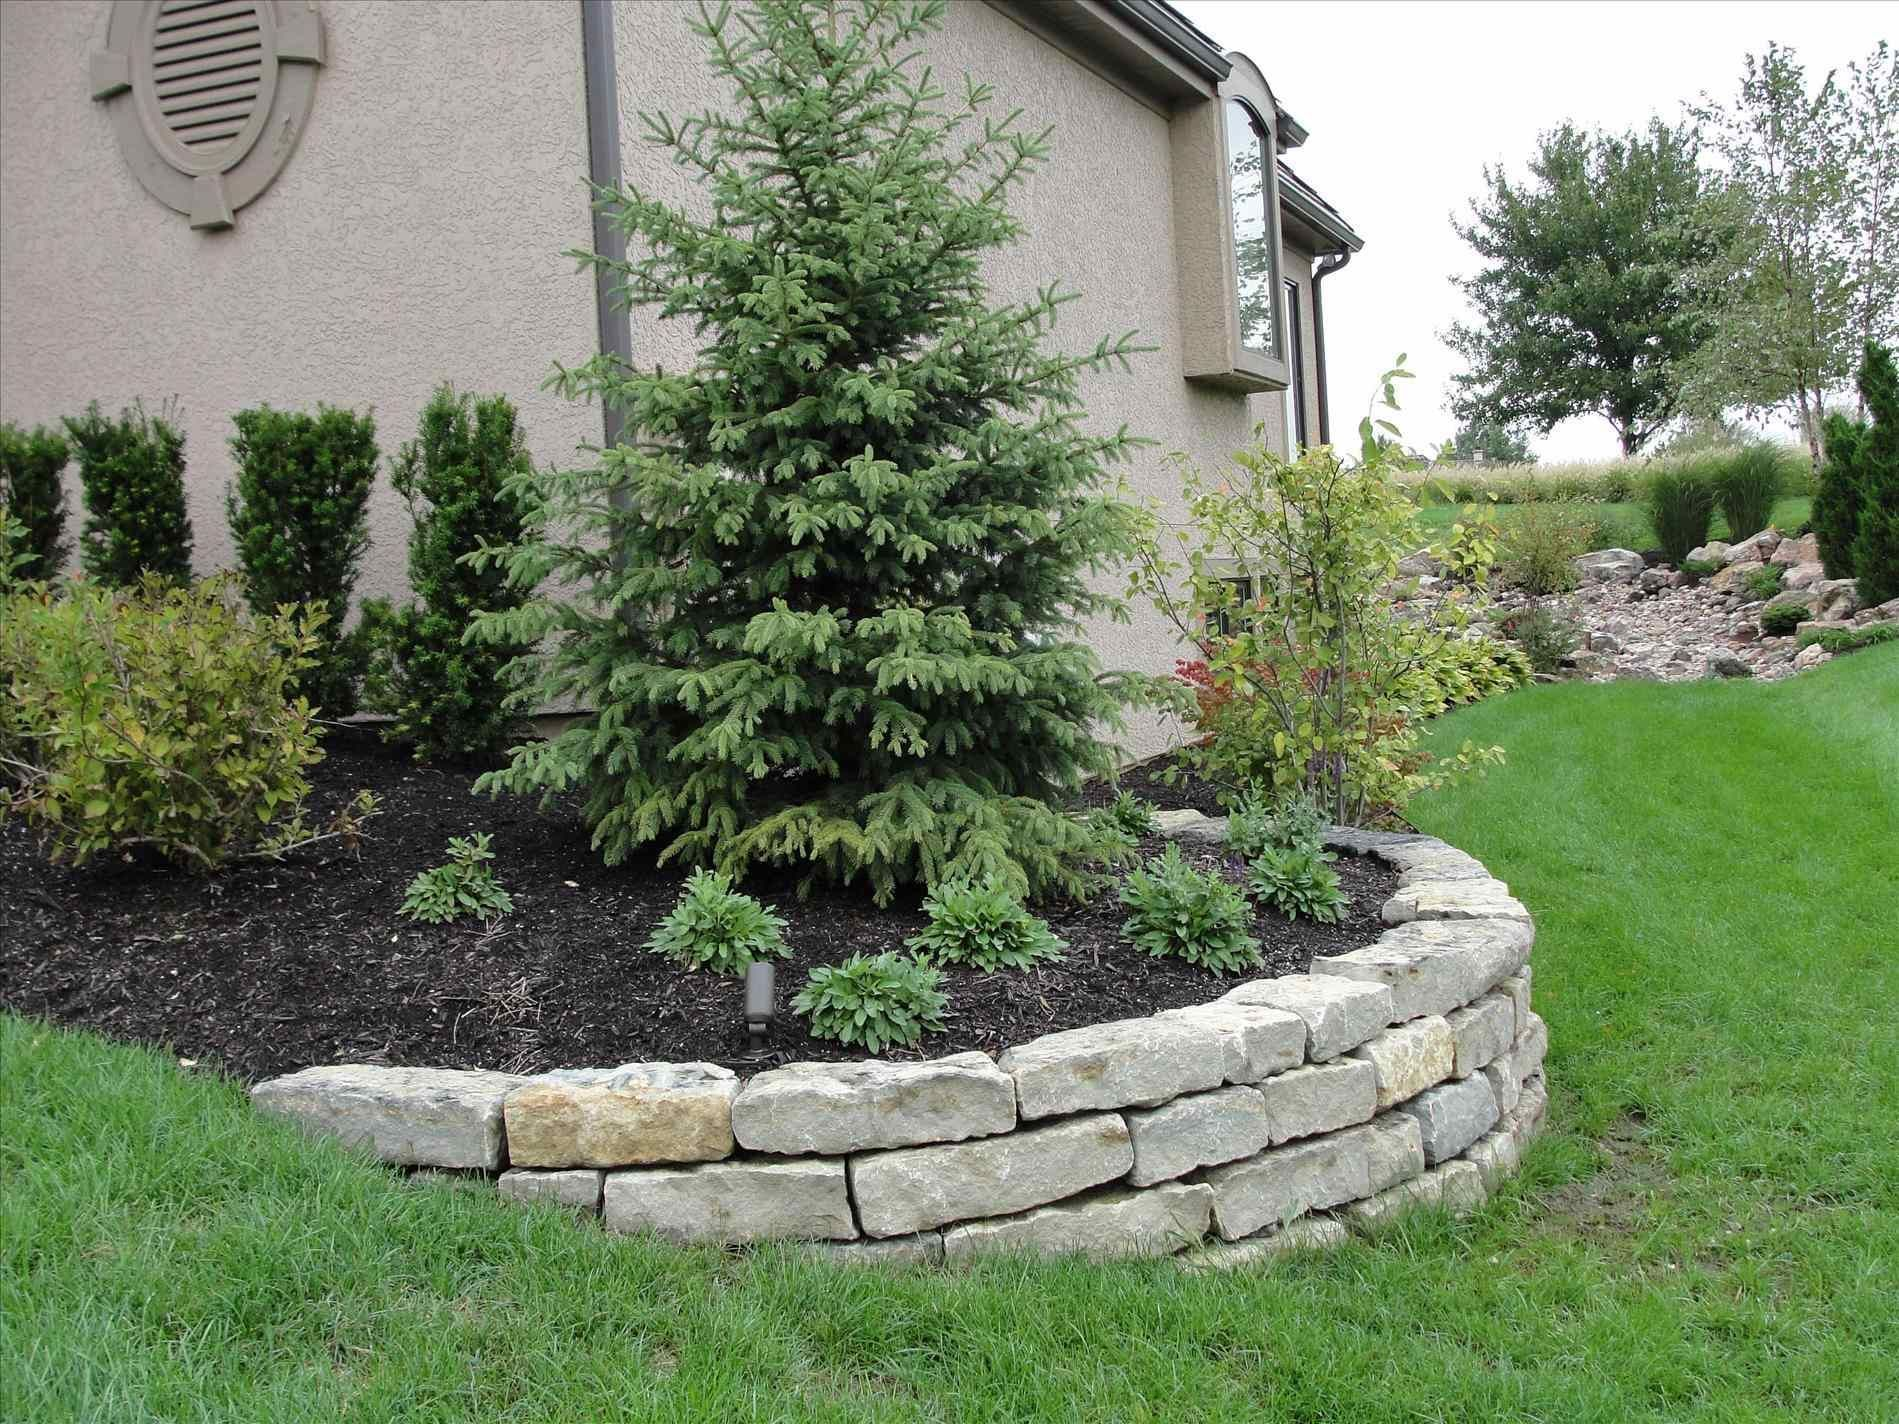 Image Result For Landscape Stone Around Trees Landscapearoundtrees Landscaping With Rocks Sloped Garden Landscaping Retaining Walls